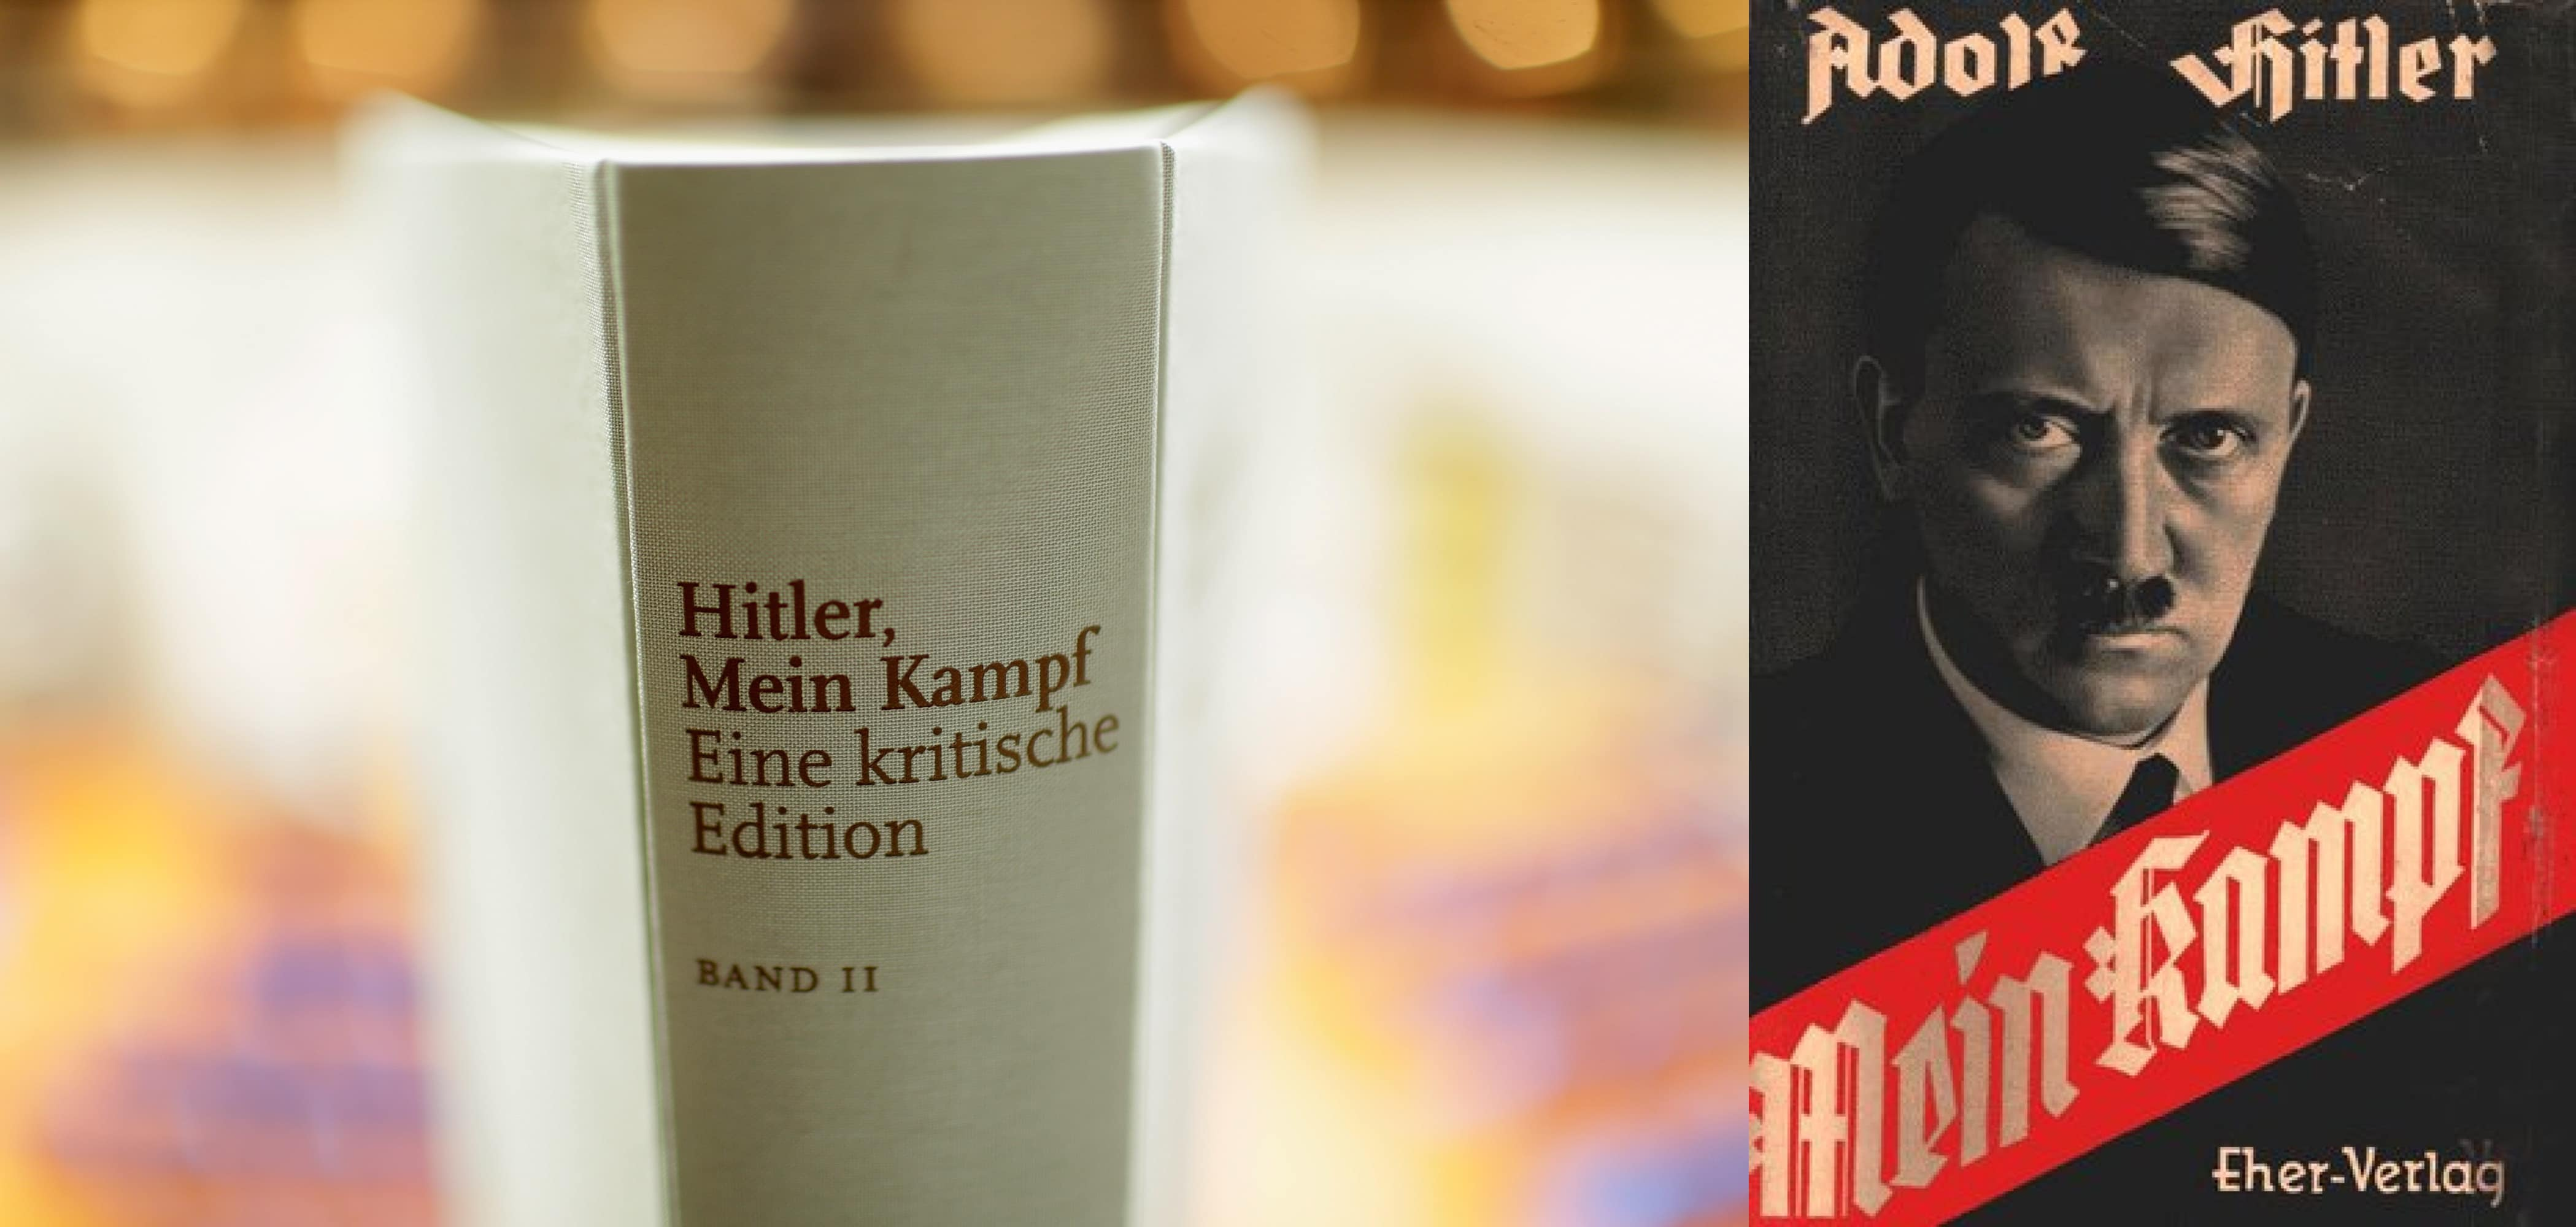 Defuse and diffuse: What the New Mein Kampf can teach us about fighting radicalism